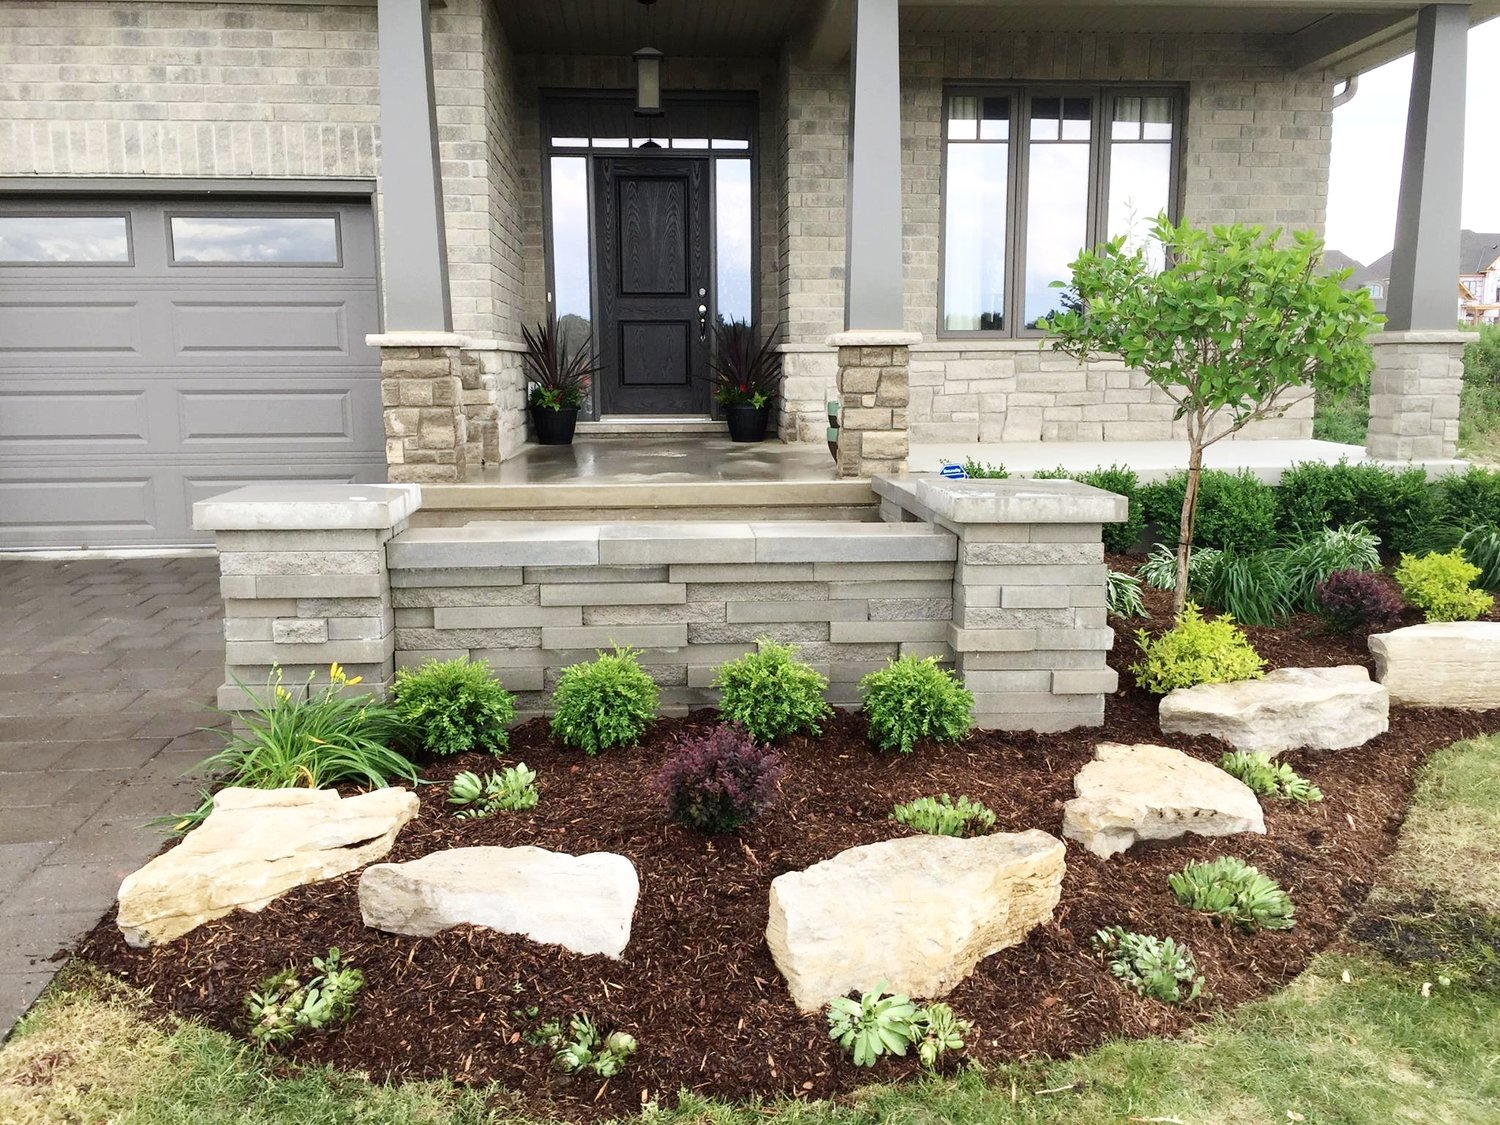 london-ontario-retaining-wall-stone-work-landscaper-06.jpeg